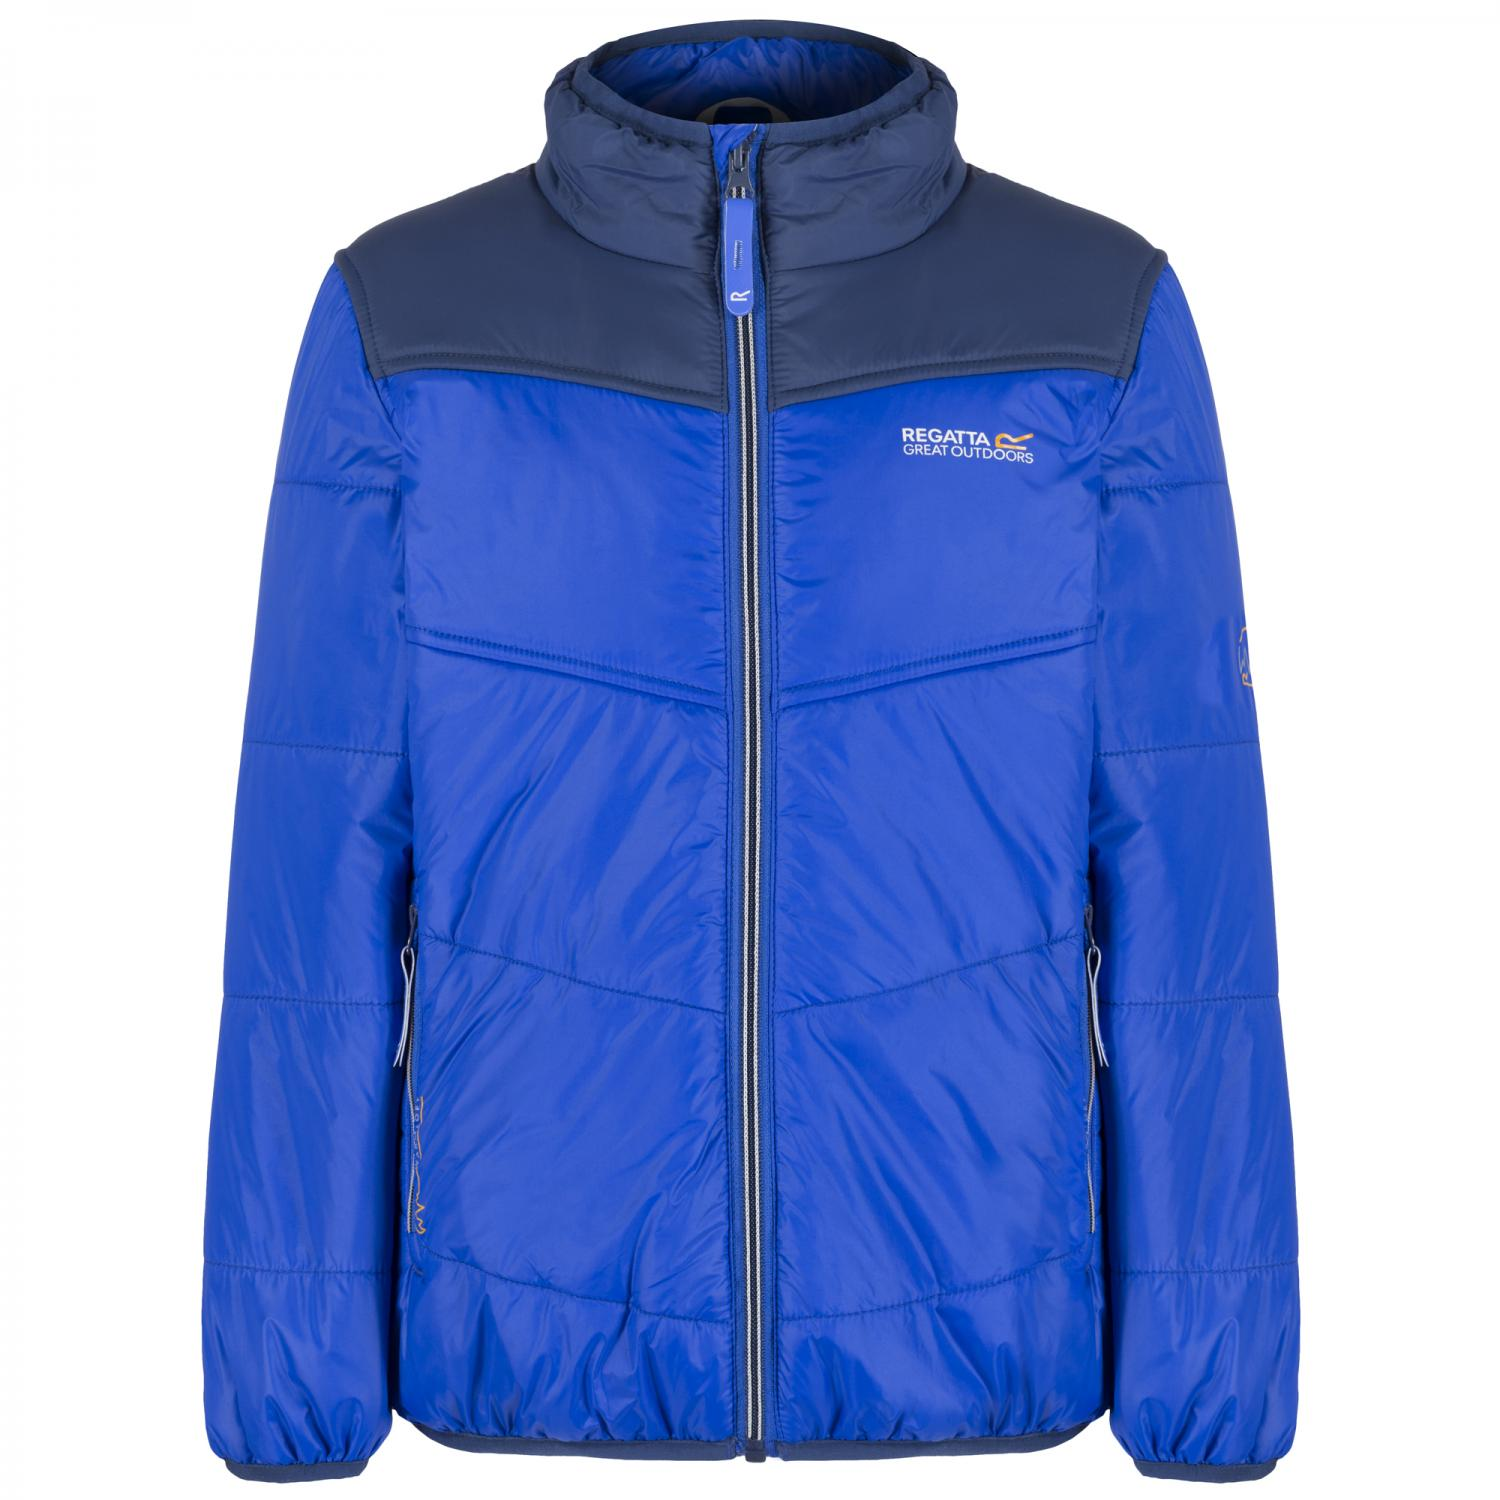 Icebound II Jacket Oxford Blue